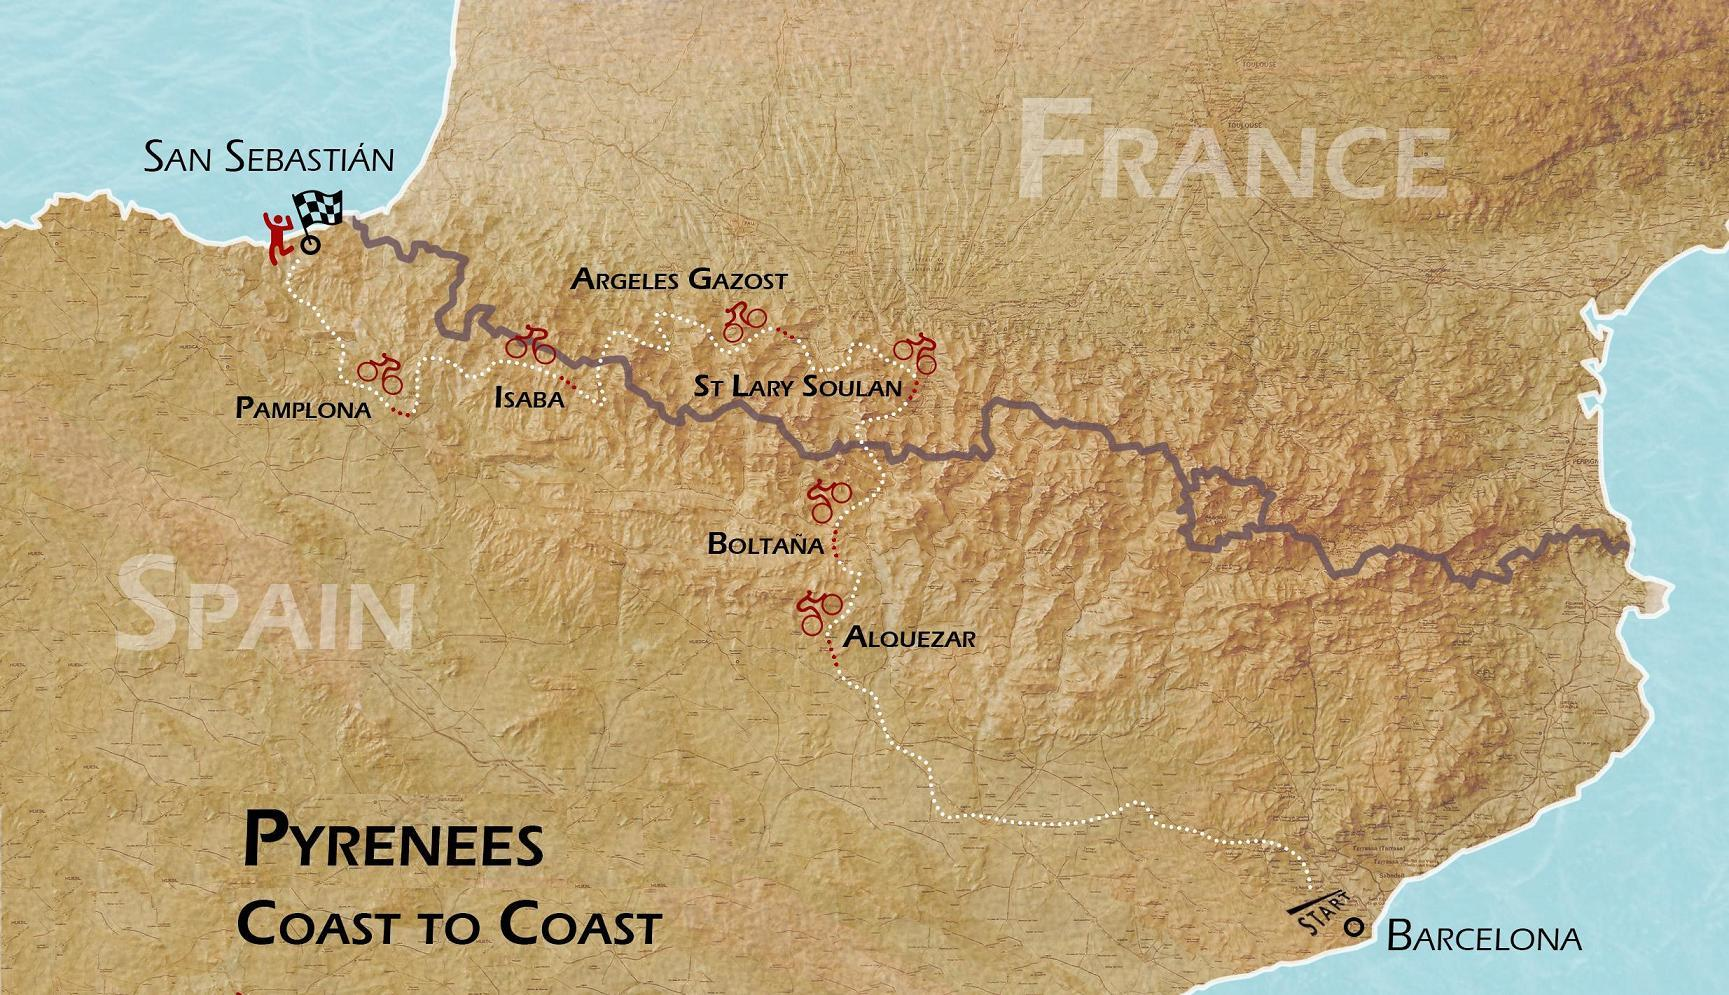 Pyrenees Coast 2 Coast Cycling Tour